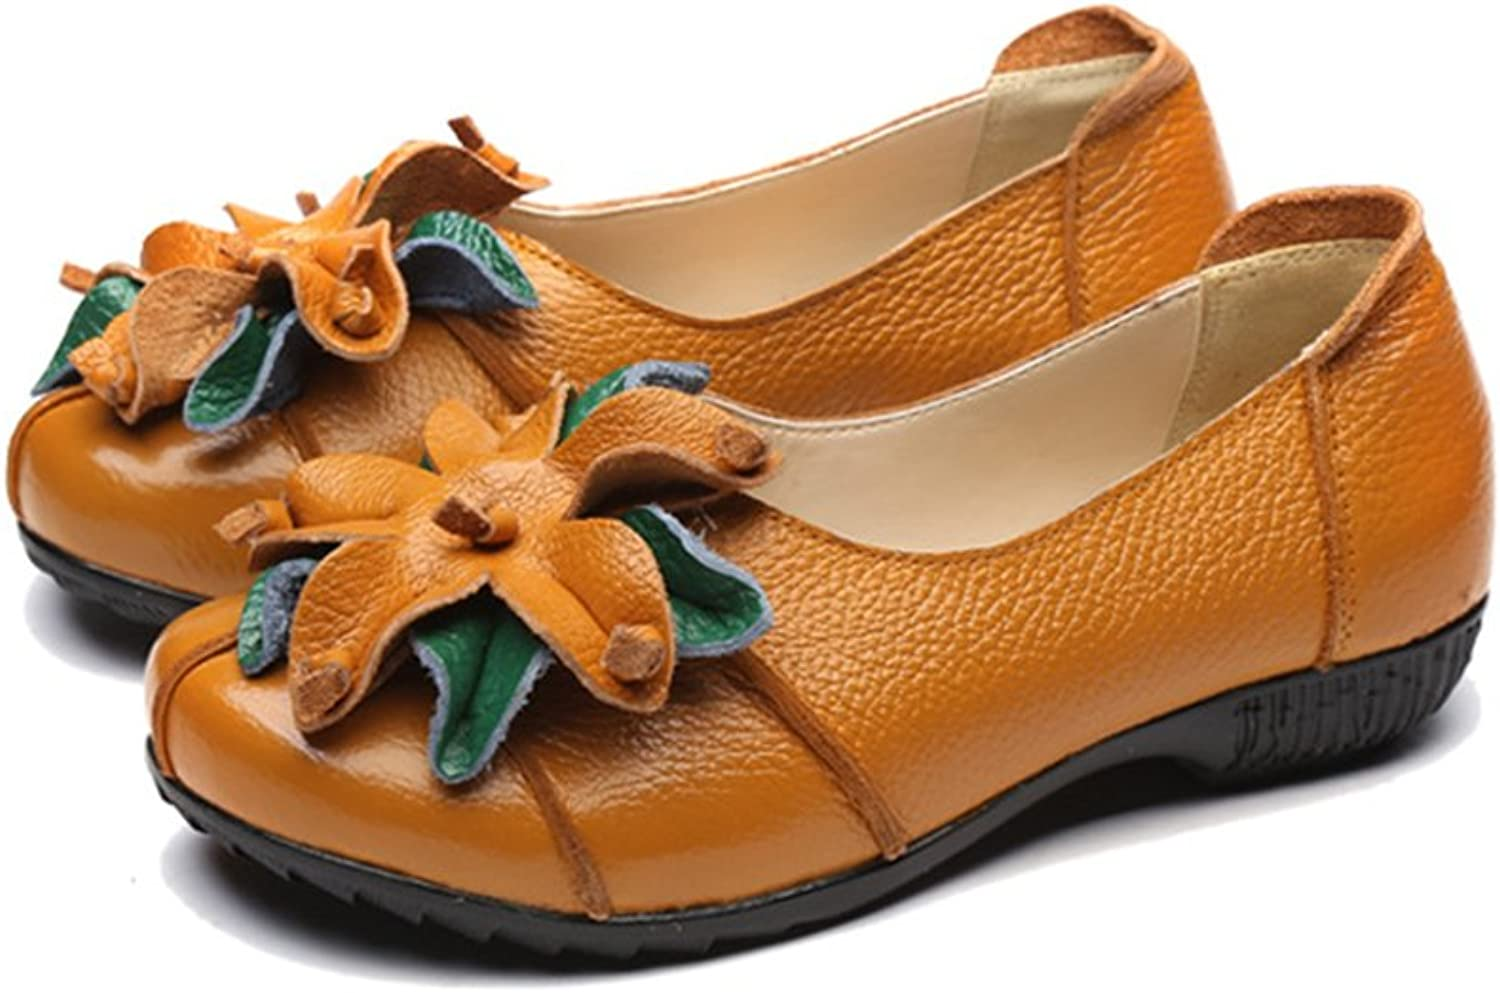 Duberess Women's Casual Leather Loafers Soft Handmade Comfortable Ladies Flat shoes